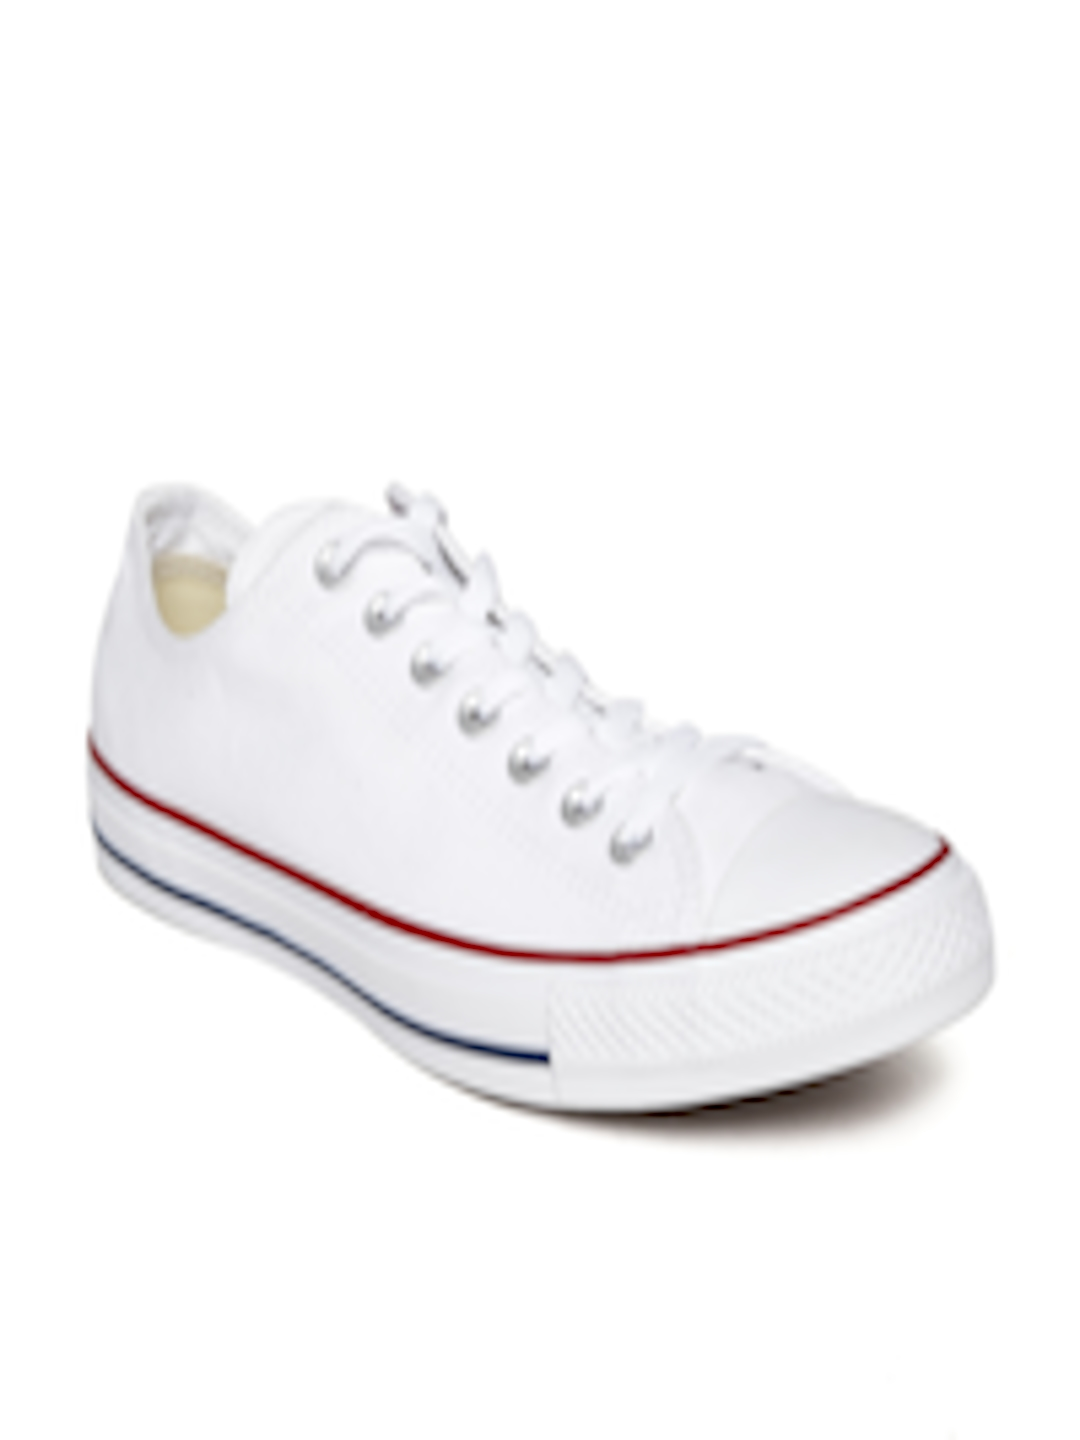 dd2a35fdecb Buy Converse Unisex White Canvas Shoes - Casual Shoes for Unisex 1459690